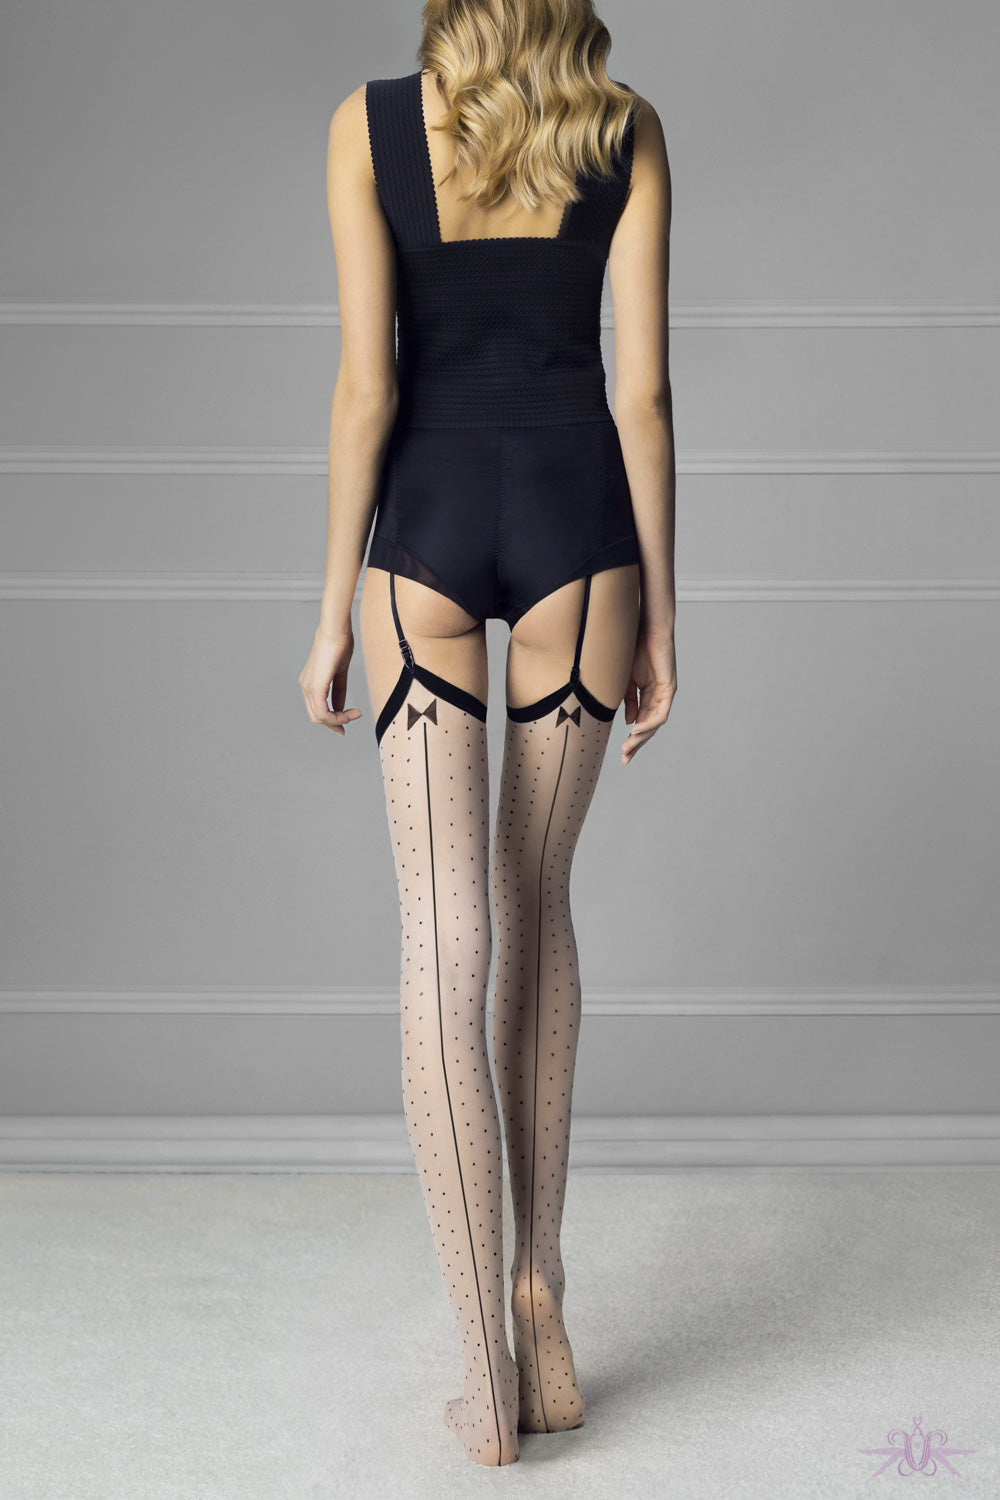 Fiore Gossip Spotted Stockings - Mayfair Stockings